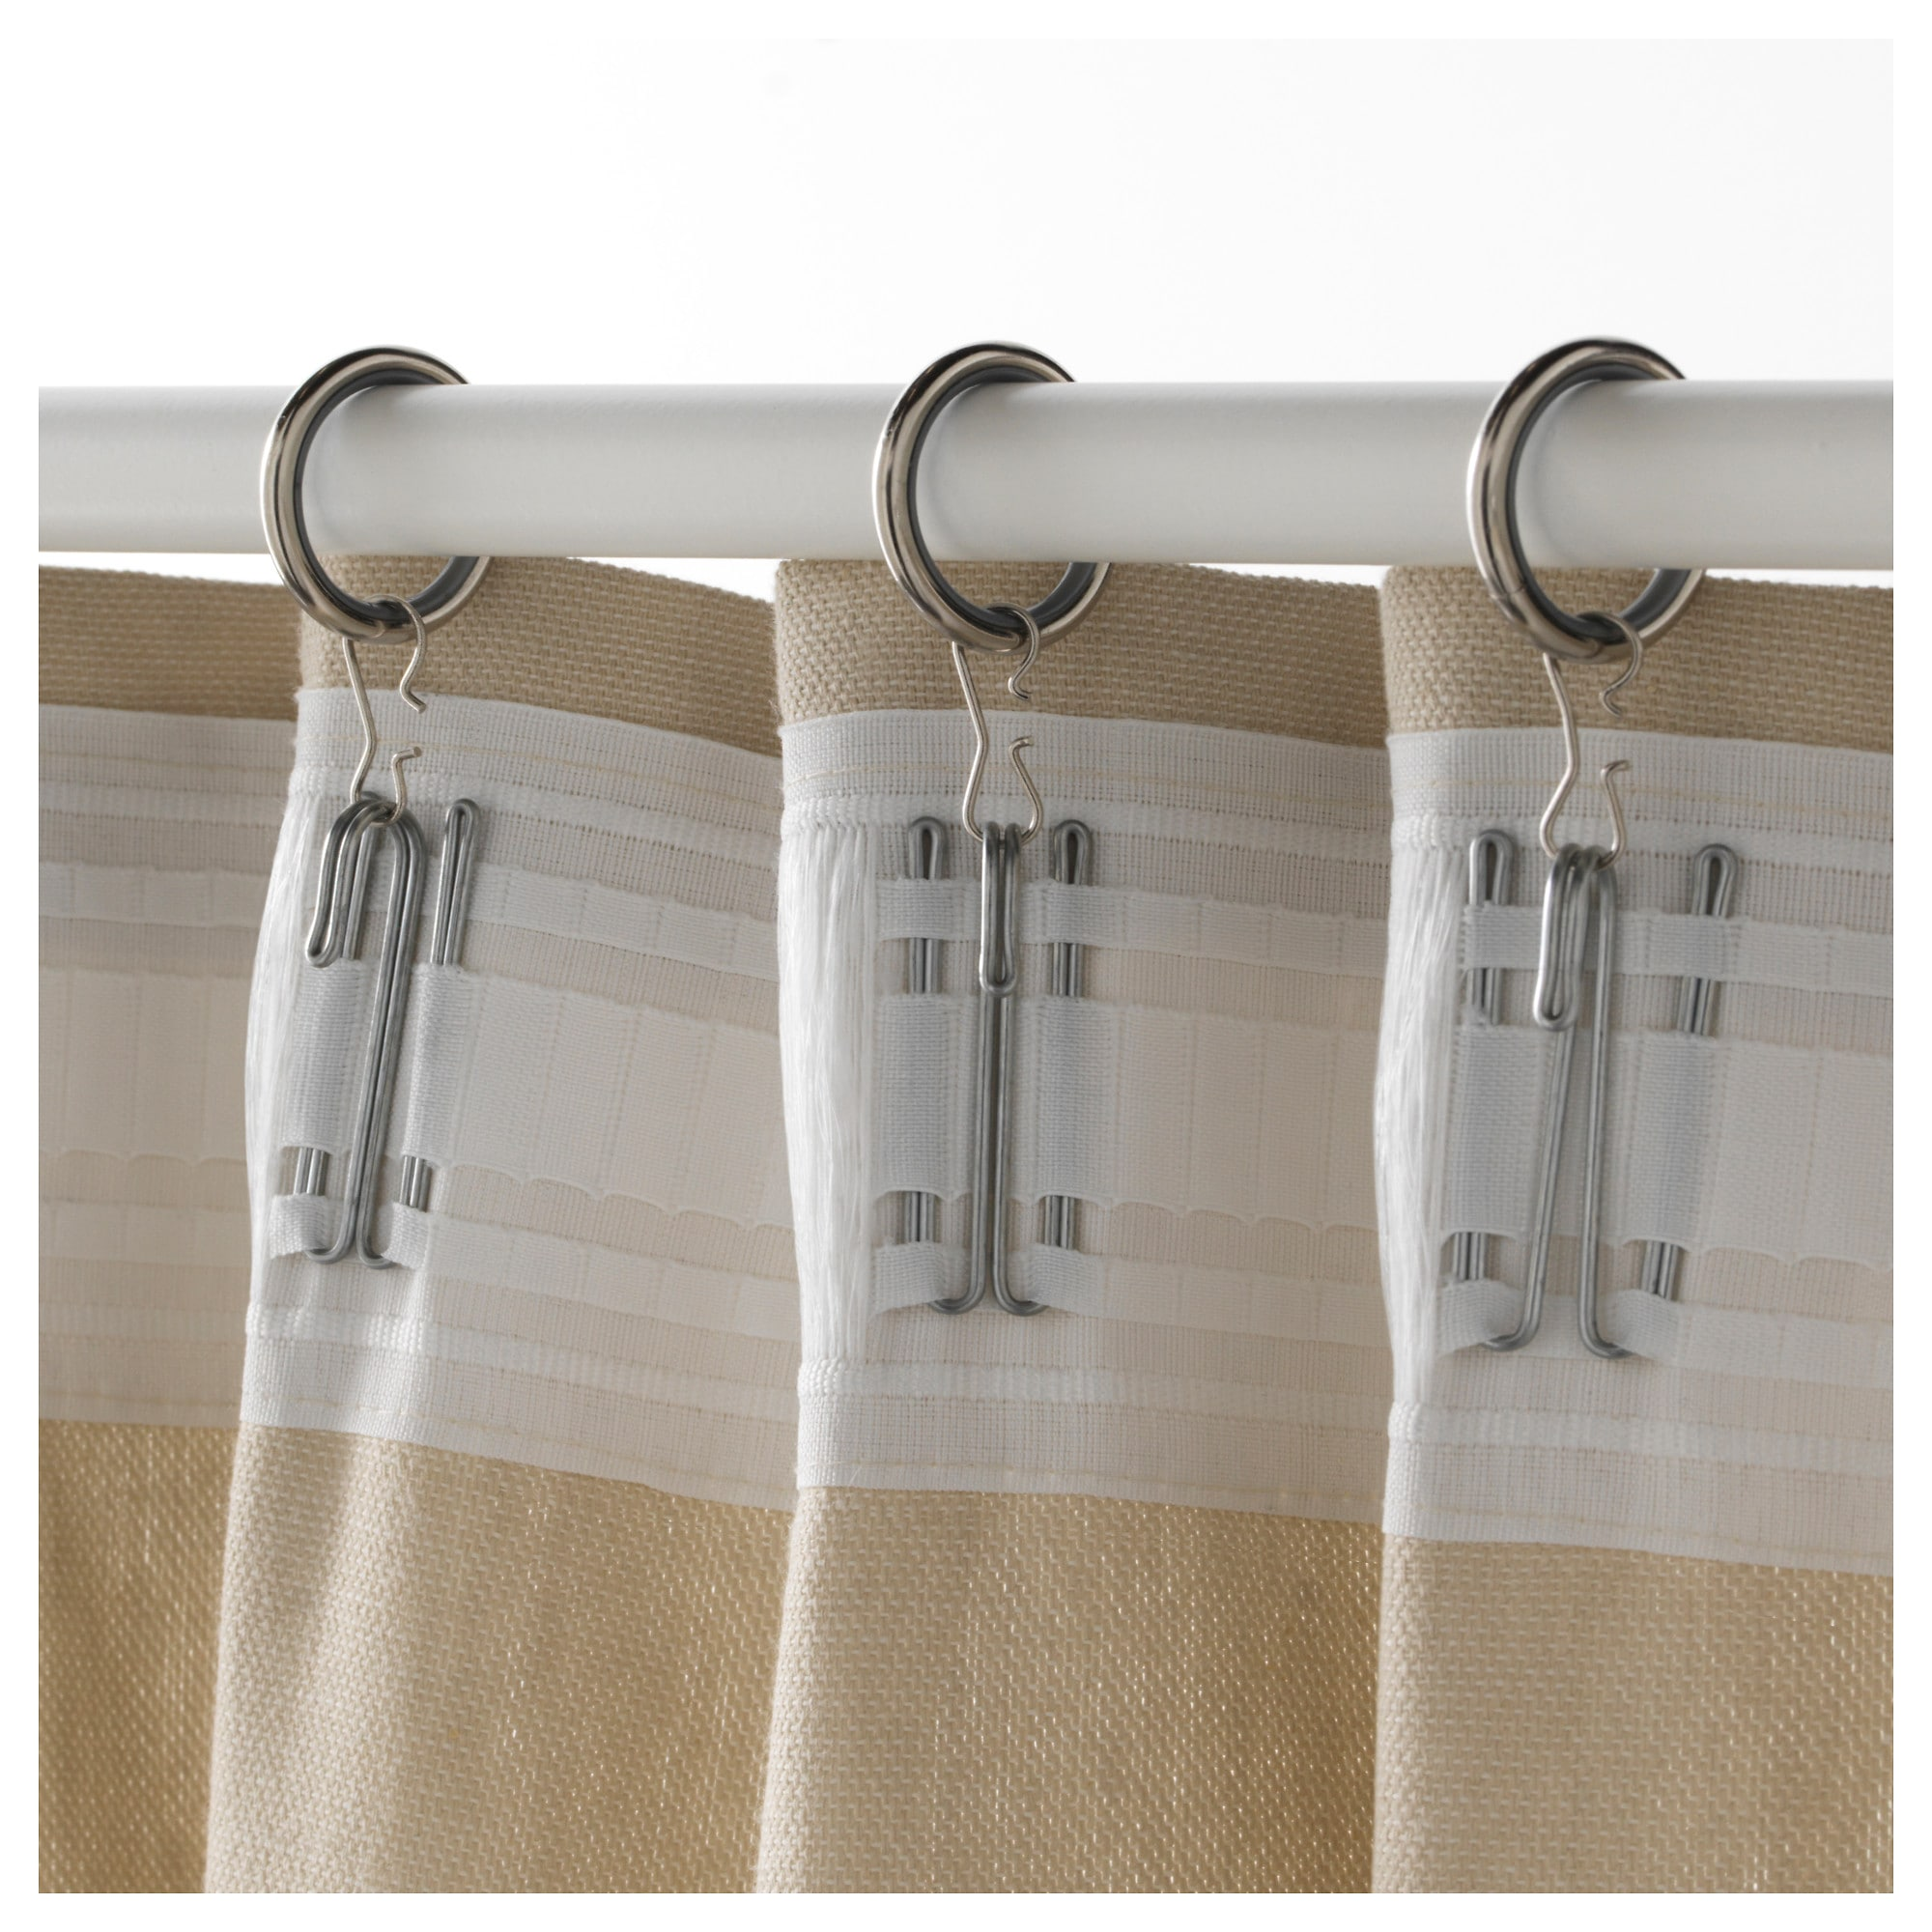 SYRLIG Curtain ring with clip and hook - IKEA